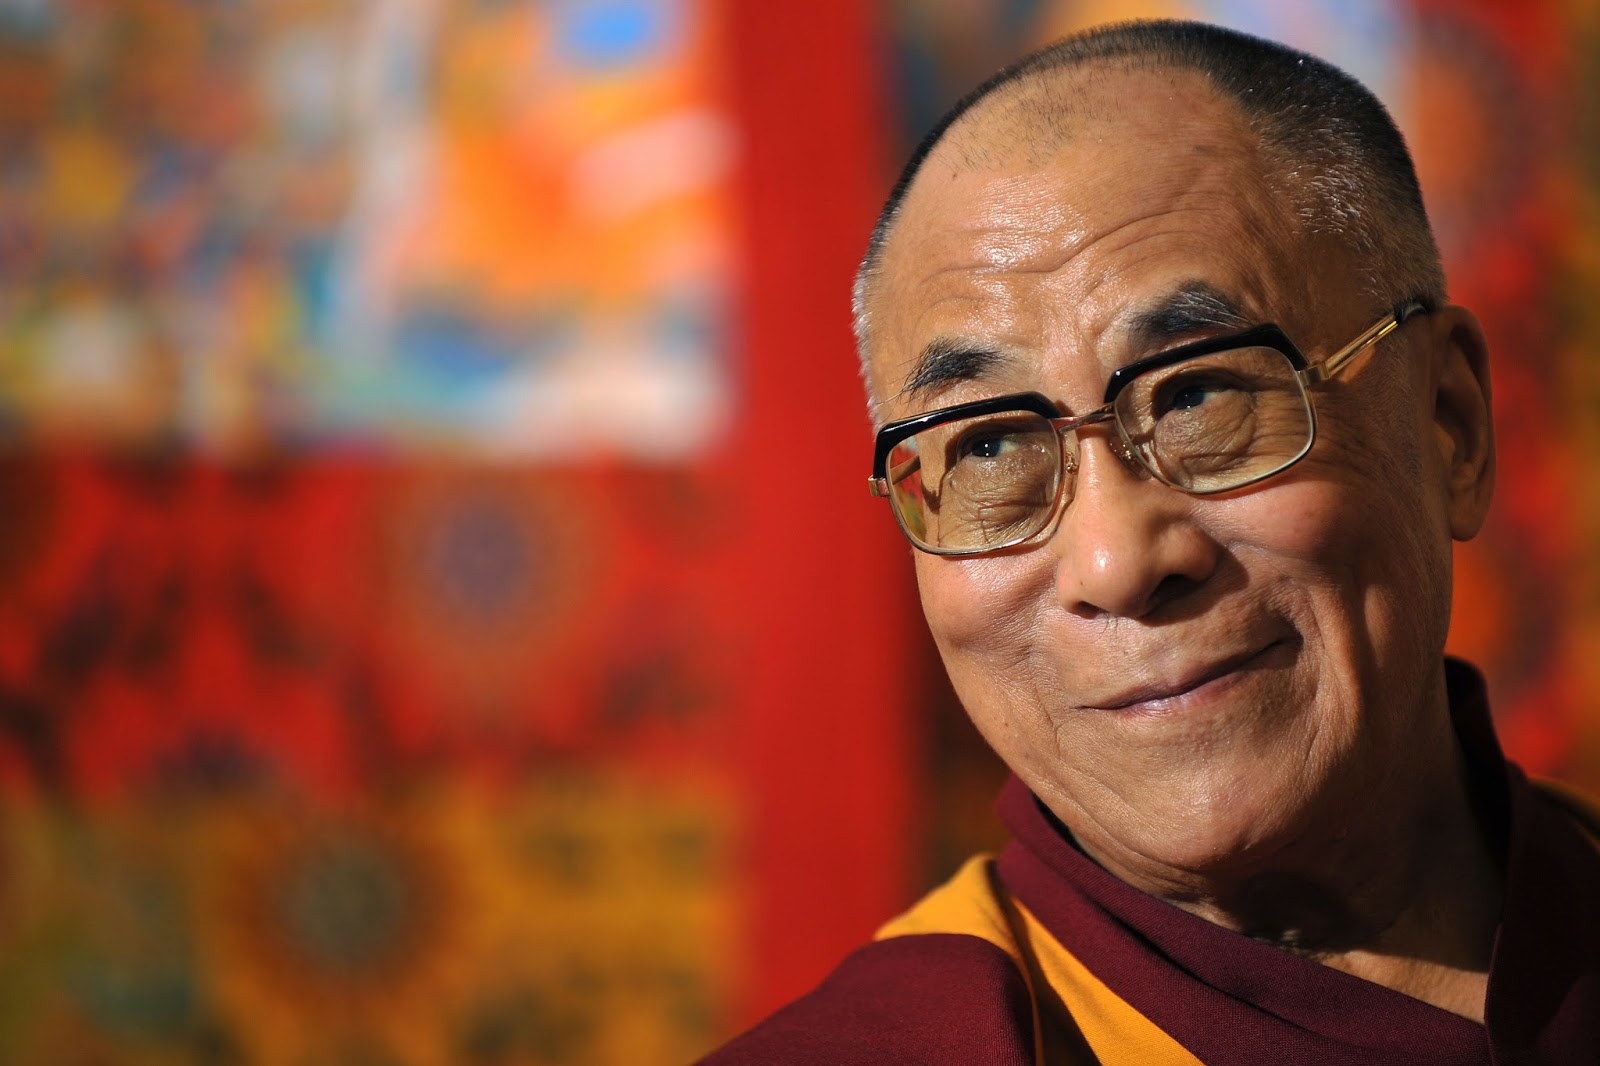 Chinese think tank head suggests Dalai Lama negotiation to solve Tibet issue